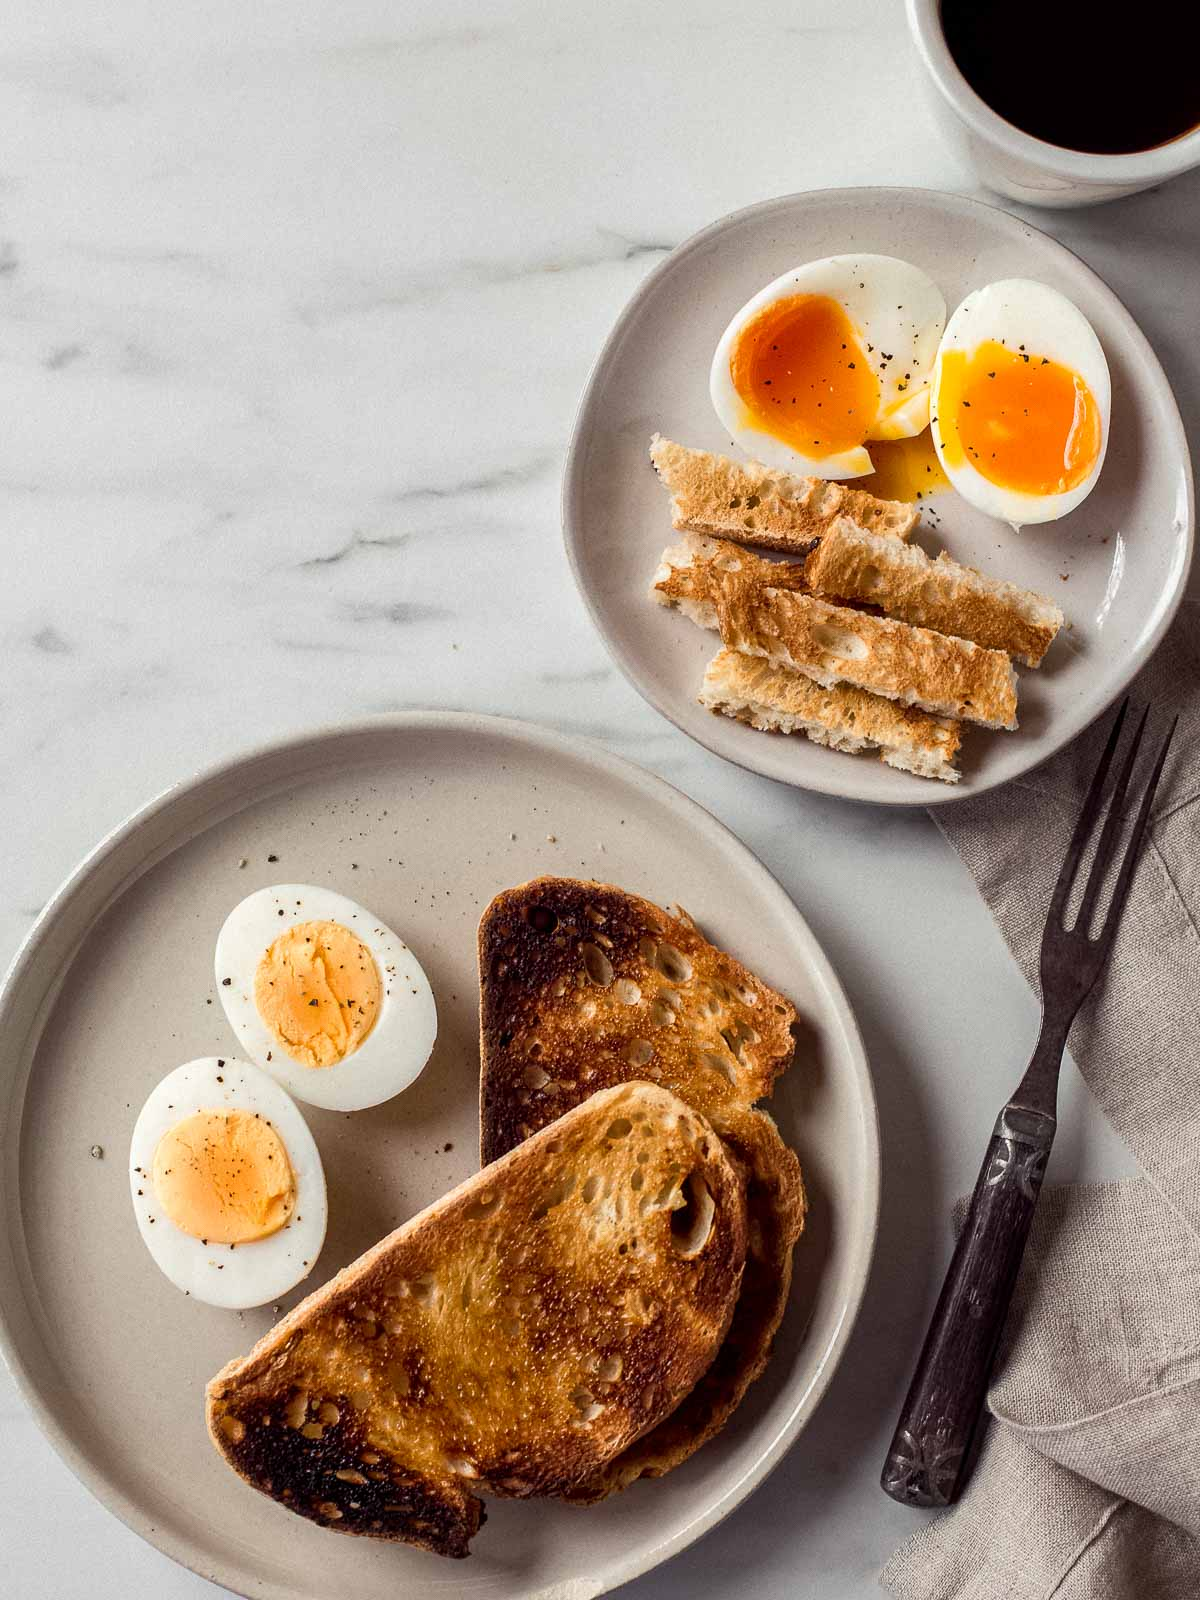 Hard and soft boiled eggs with toast on two plates.